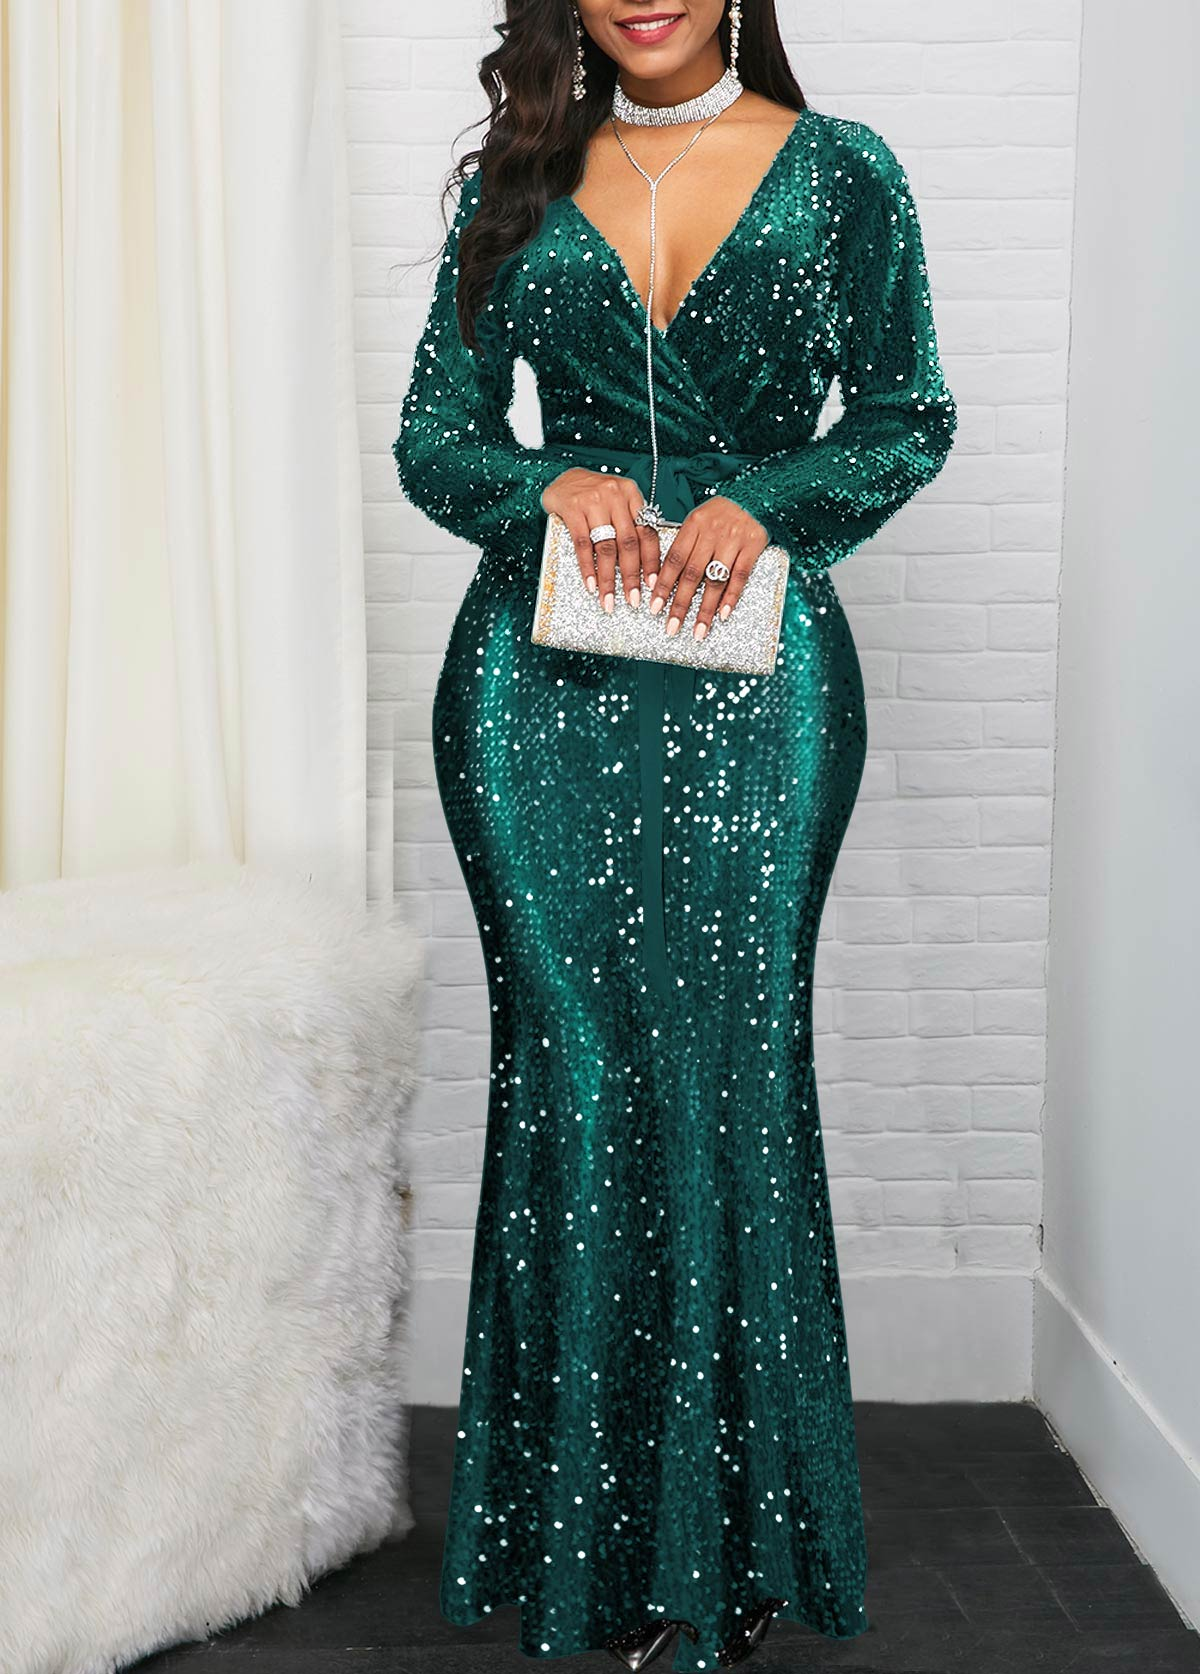 Plunging Neck Ruffle Hem Sequin Embellished Dress